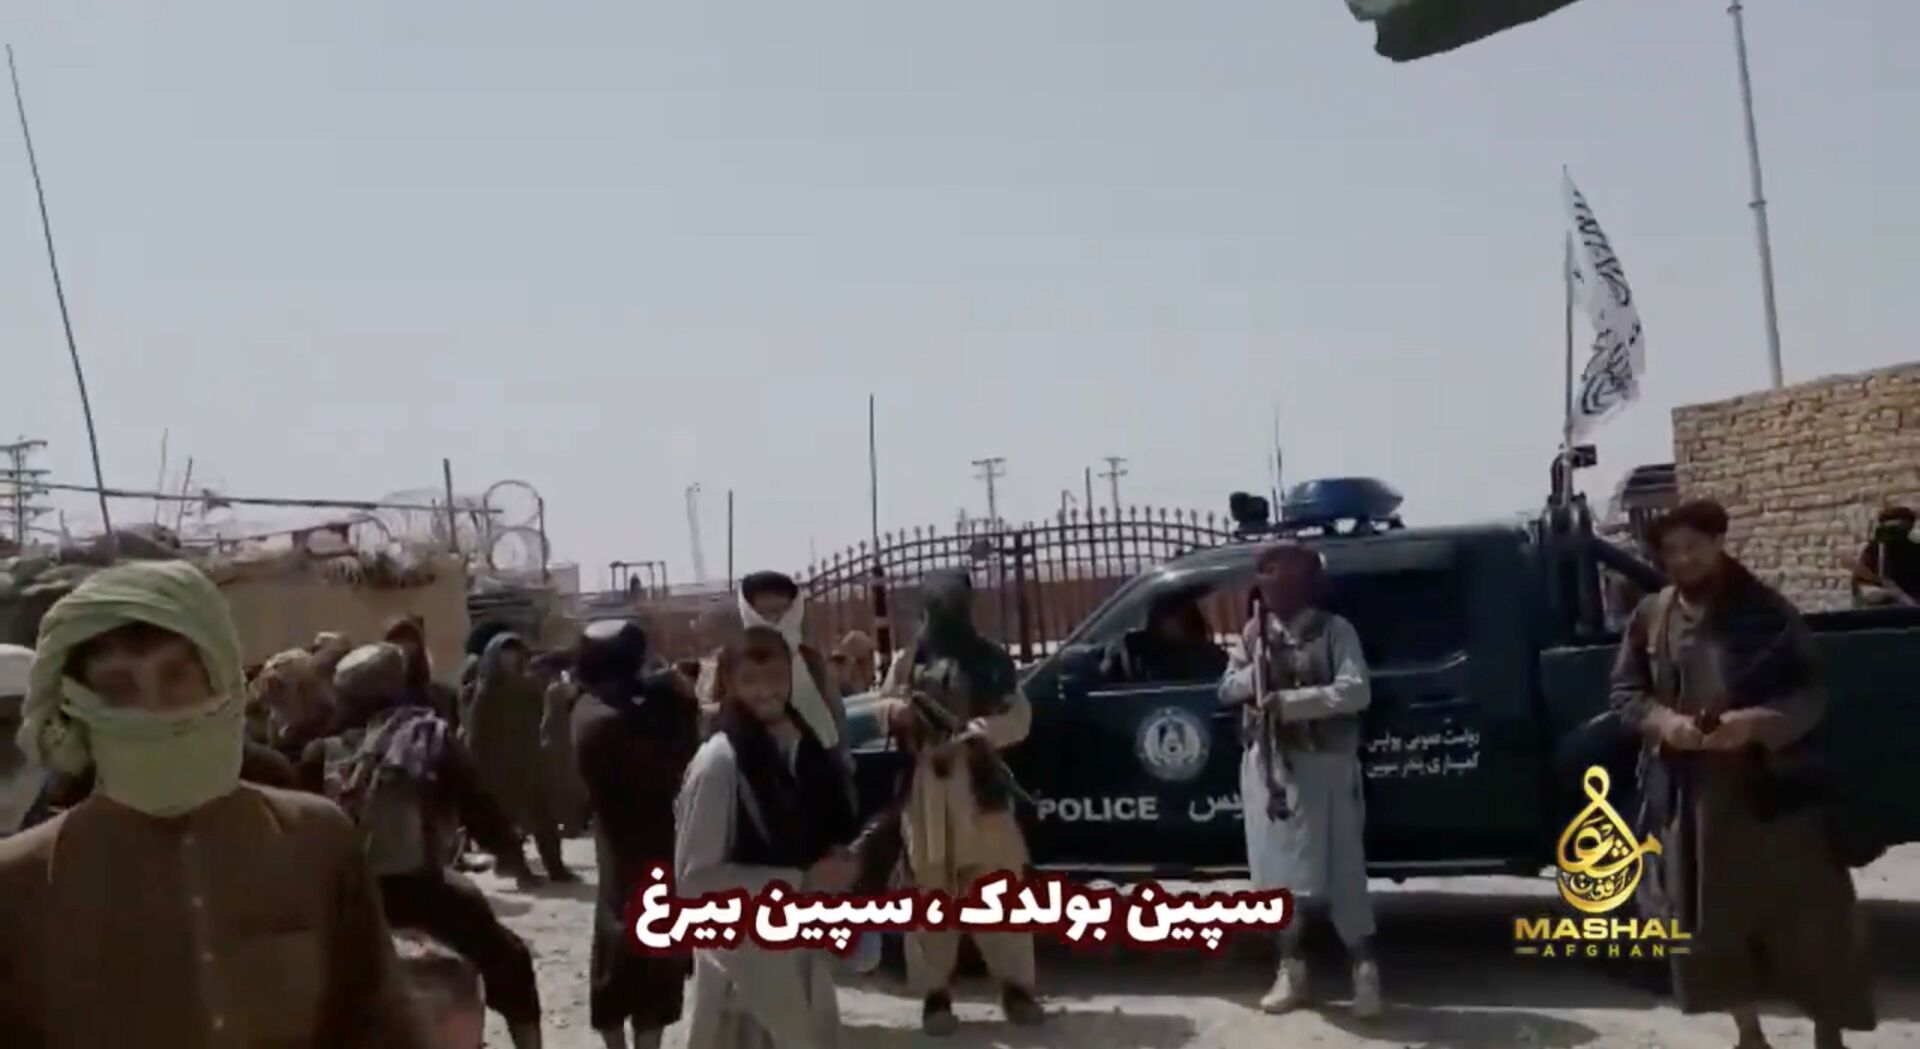 People stand in front of a vehicle as an Islamic Emirate of Afghanistan and a Pakistan's flag flutter in front of the friendship gate of Afghanistan and Pakistan at the Wesh-Chaman border crossing, Spin Boldak, Afghanistan July 14, 2021, in this screen grab obtained from a video - Sputnik International, 1920, 07.09.2021